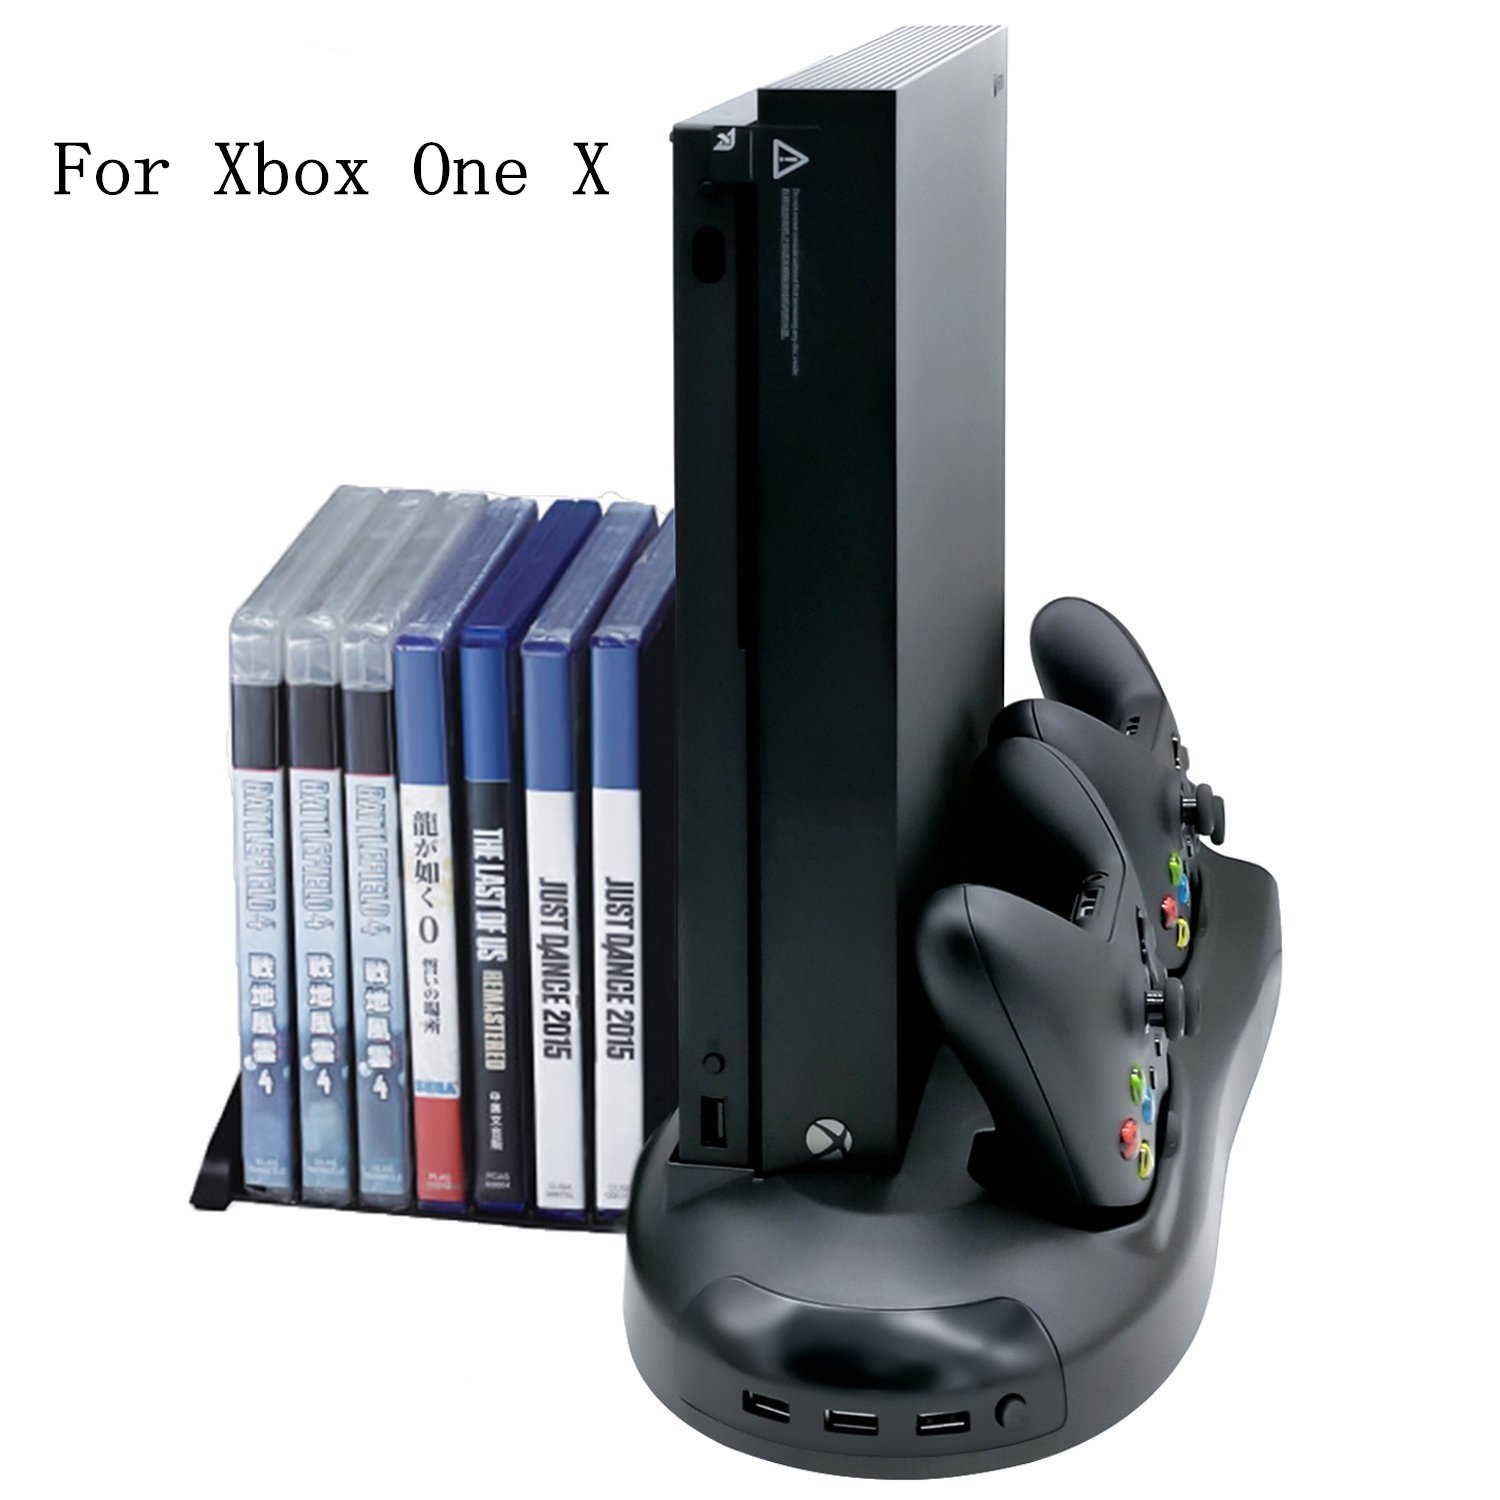 eLUUGIE Multifunction Vertical Stand with Cooling Fan Game Discs Orainzer Mounts & Dualshock Charger For For Xbox One X Console Xbox One X Controller Charger Dock